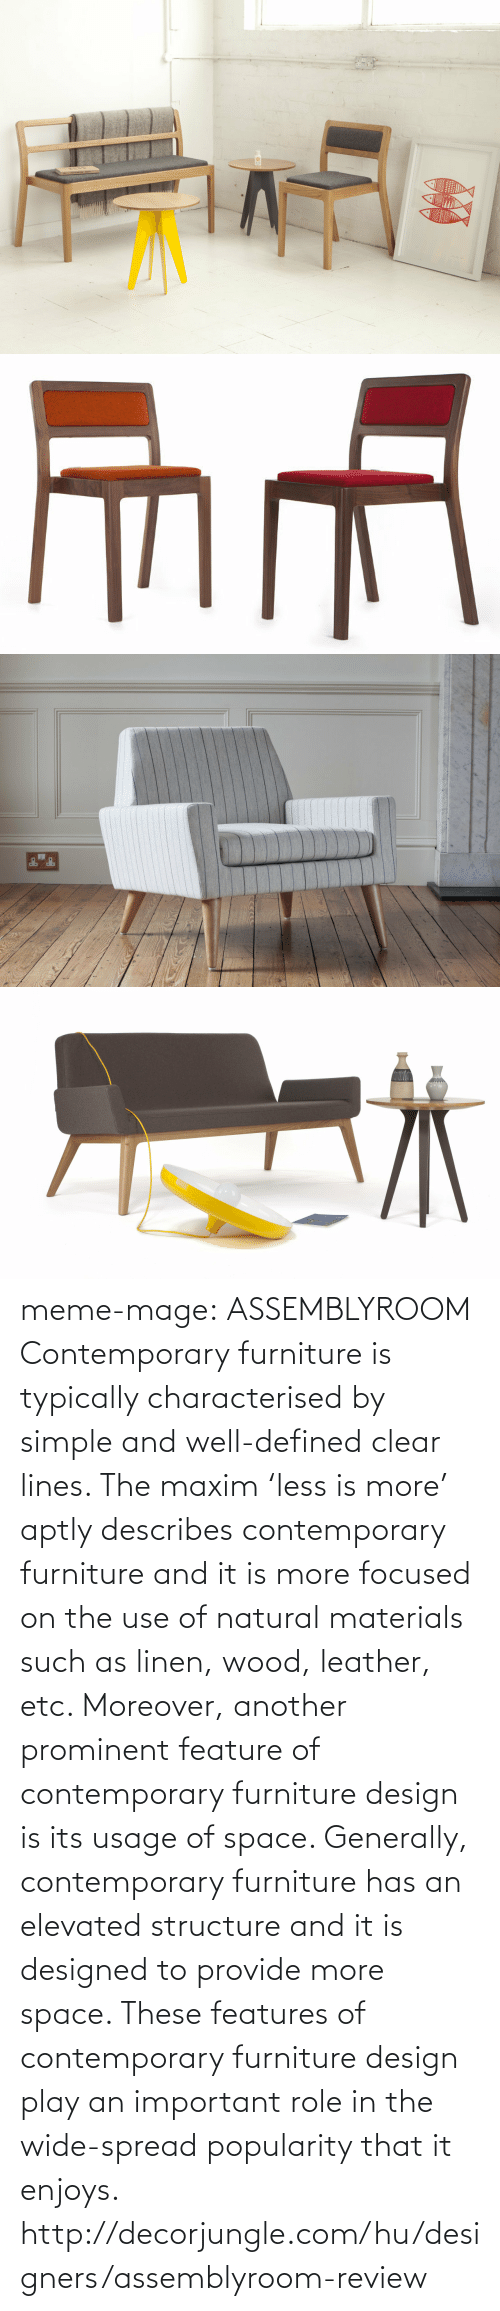 Designers: meme-mage:    ASSEMBLYROOM Contemporary furniture is typically characterised by simple and well-defined clear lines. The maxim 'less is more' aptly describes contemporary furniture and it is more focused on the use of natural materials such as linen, wood, leather, etc. Moreover, another prominent feature of contemporary furniture design is its usage of space. Generally, contemporary furniture has an elevated structure and it is designed to provide more space. These features of contemporary furniture design play an important role in the wide-spread popularity that it enjoys. http://decorjungle.com/hu/designers/assemblyroom-review